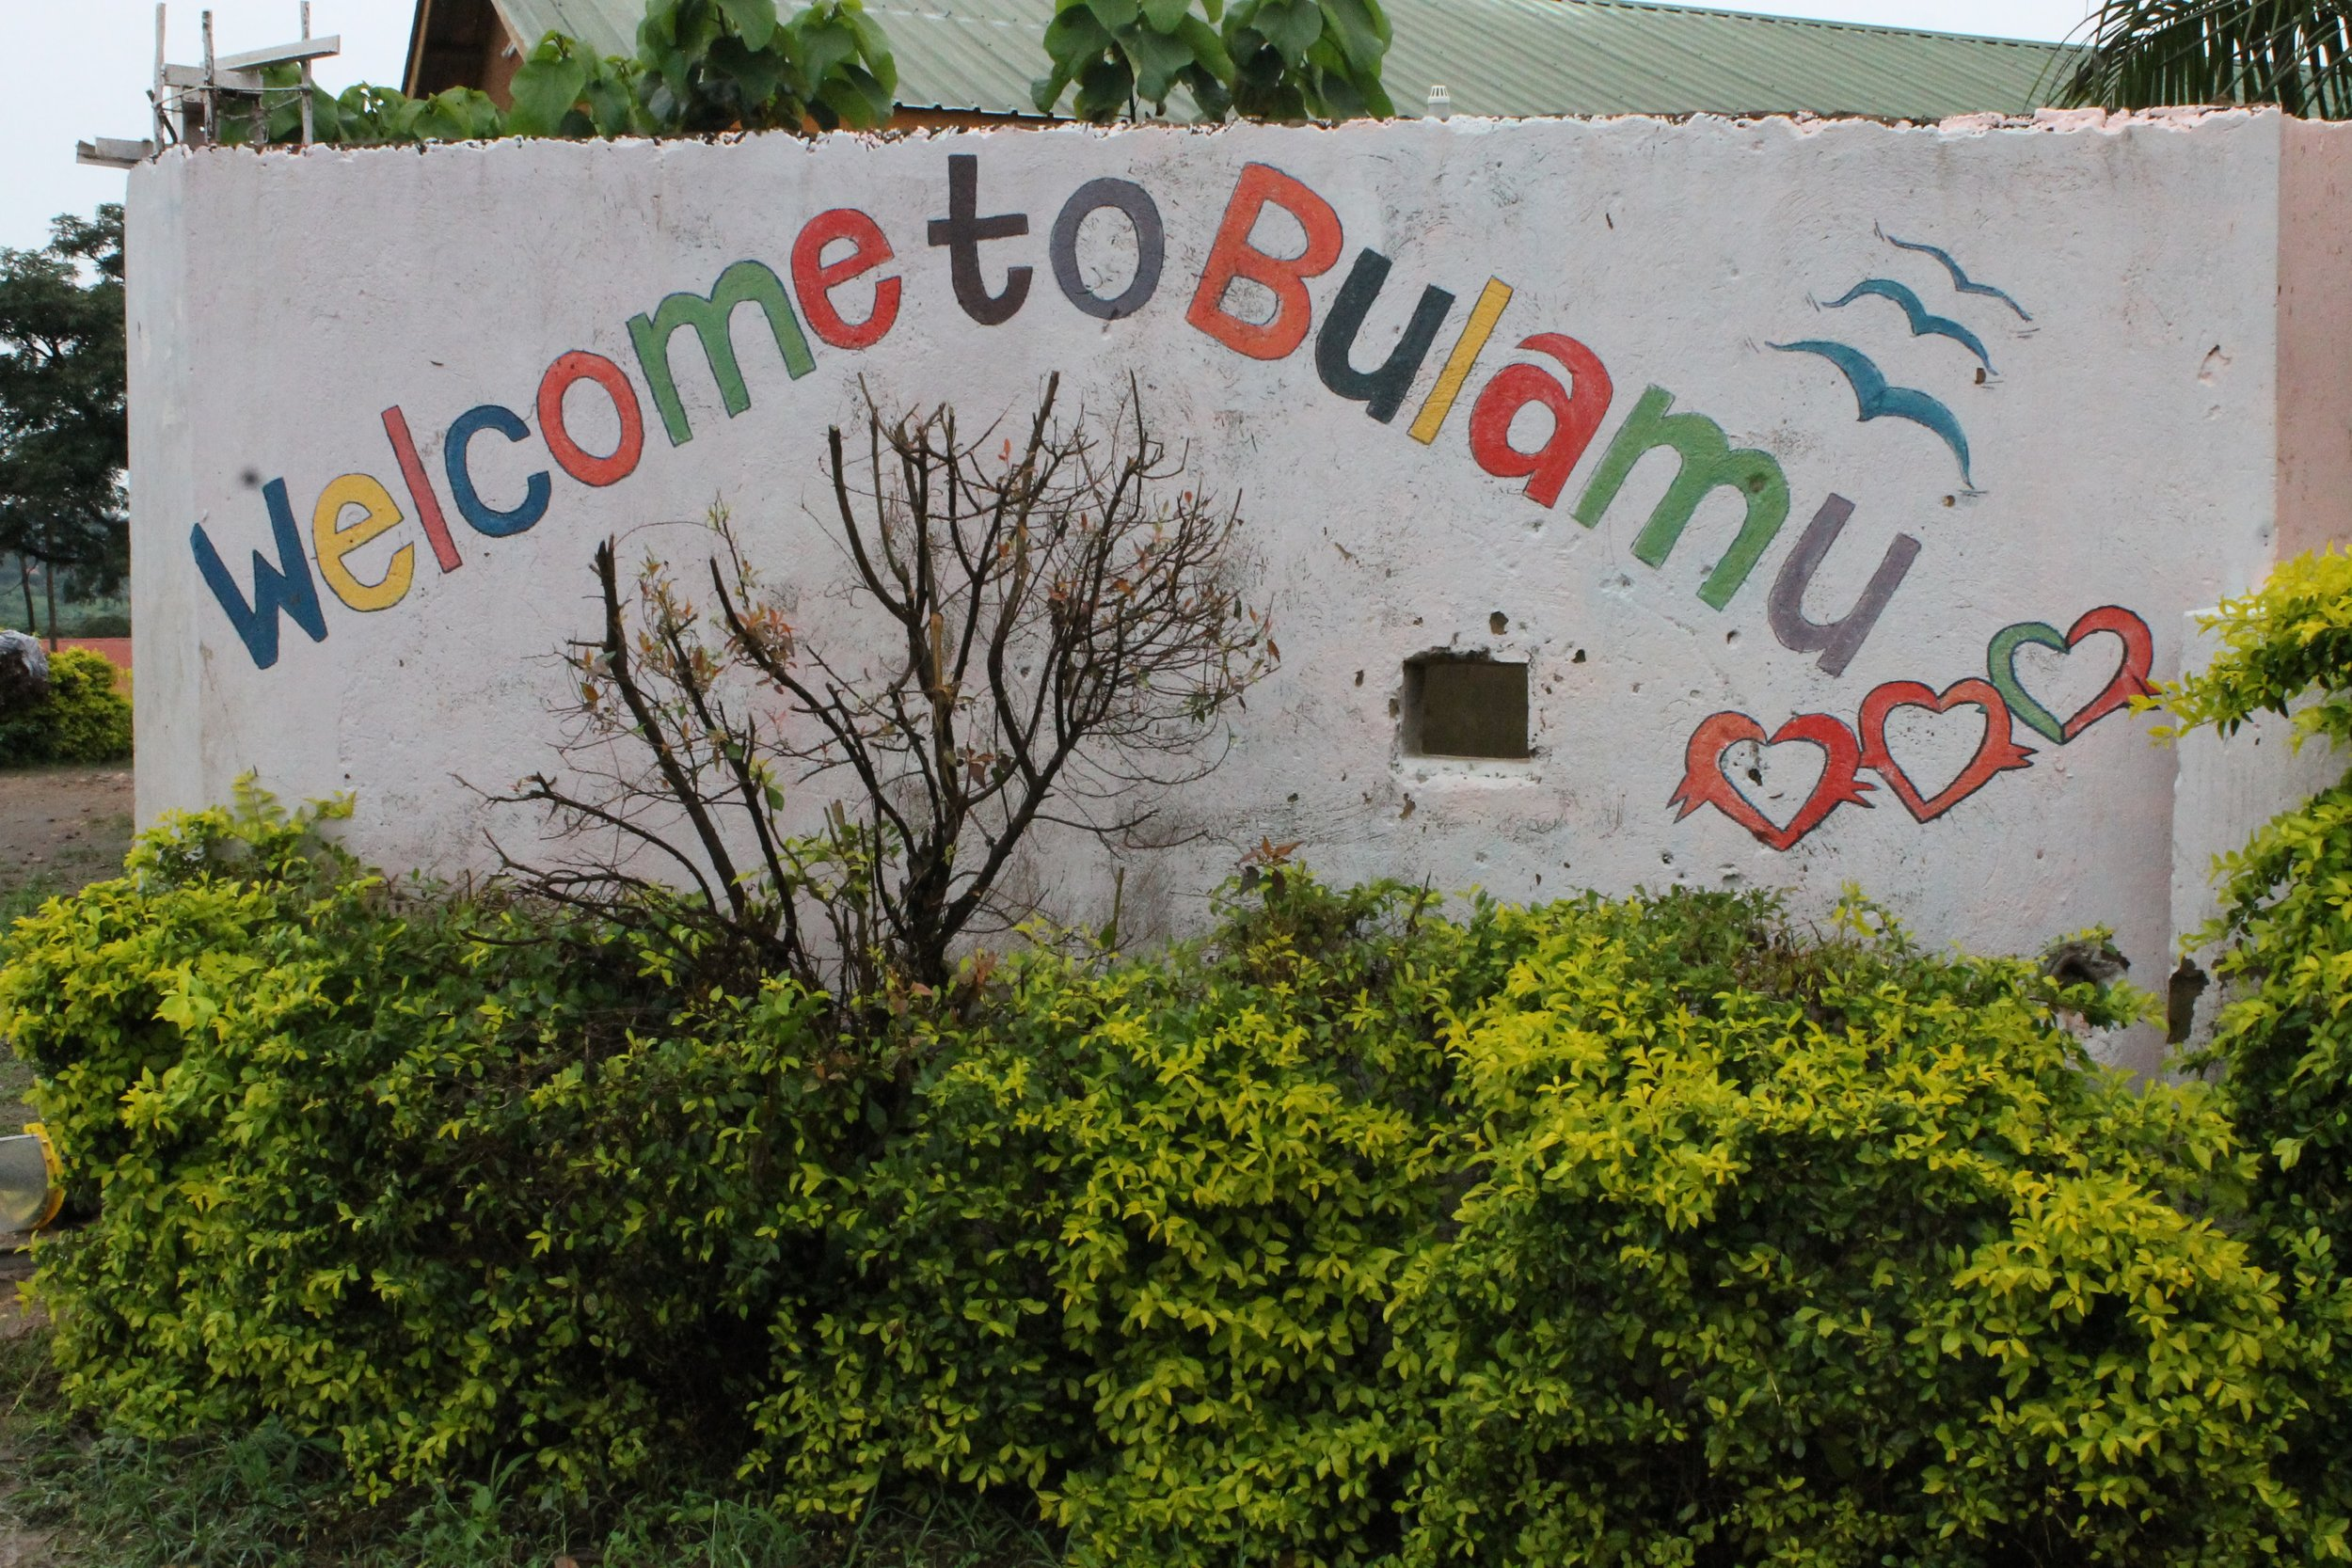 Bulamu Children's Home is home to over 200 orphans and children whose families can no longer take care of them. They house, feed and educate these children from Pre-K through high school.